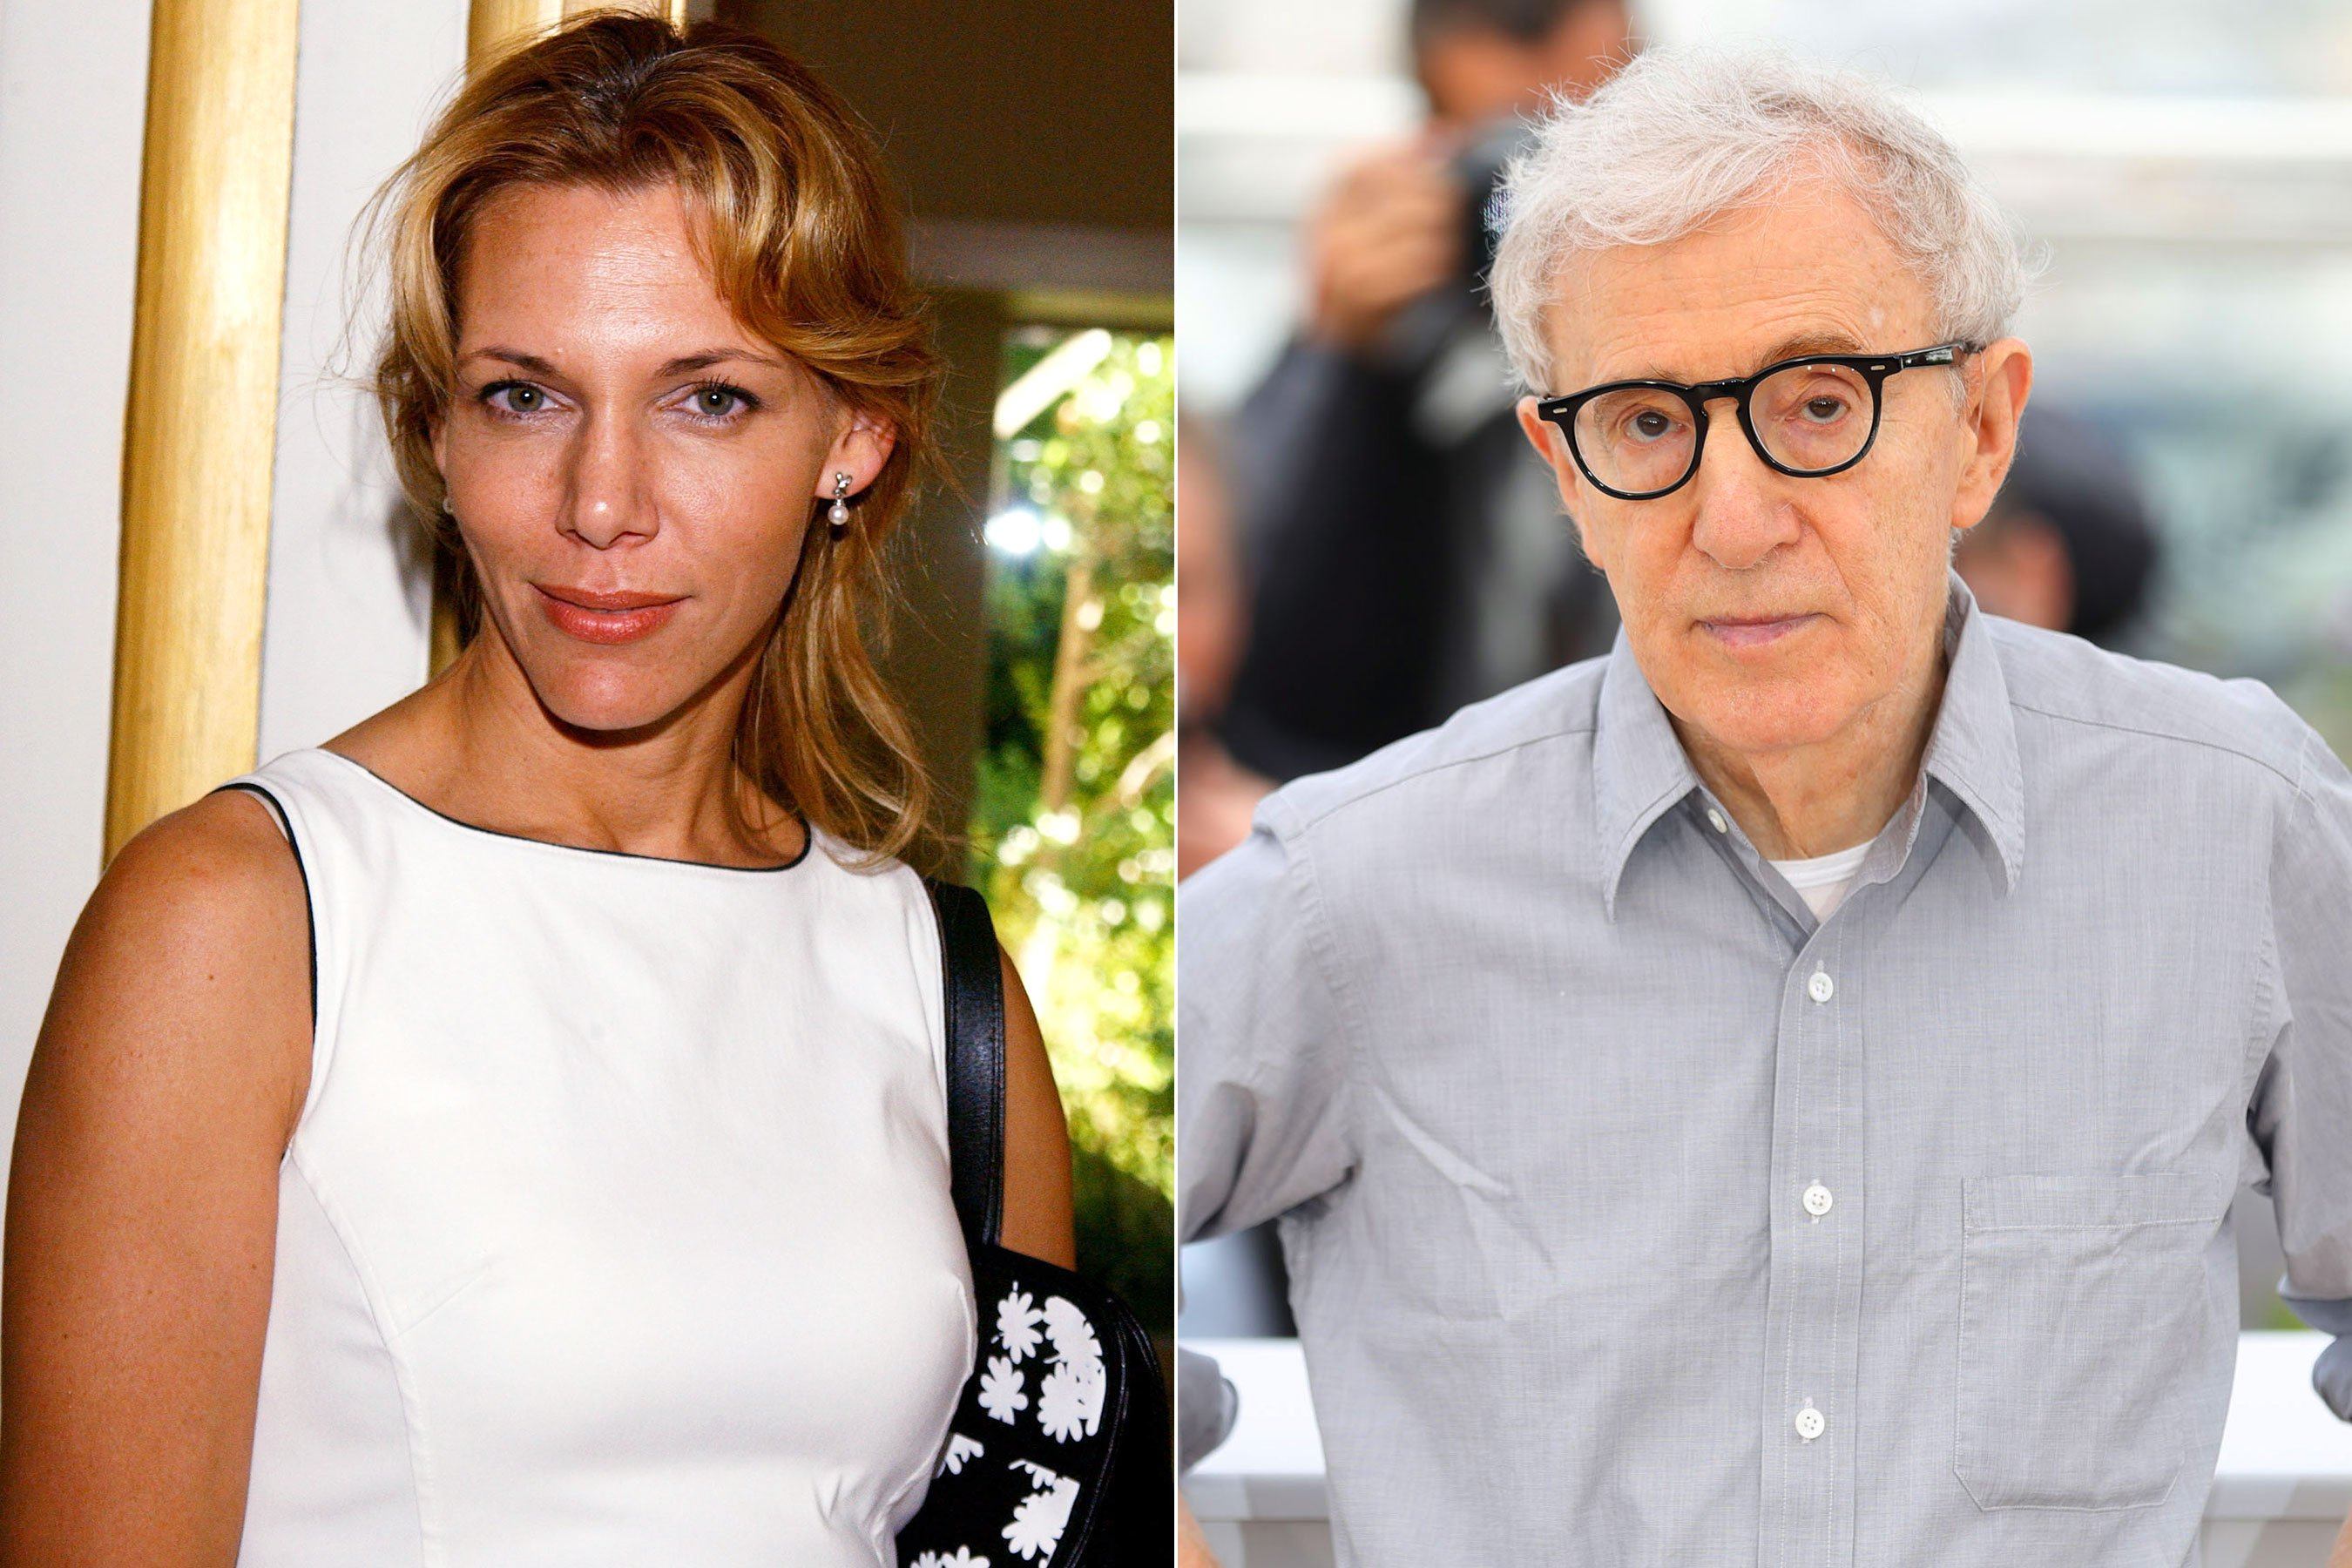 Actress Alleges of 8-Year Romance with Woody Allen Starting When She Was 16 and He Was 41